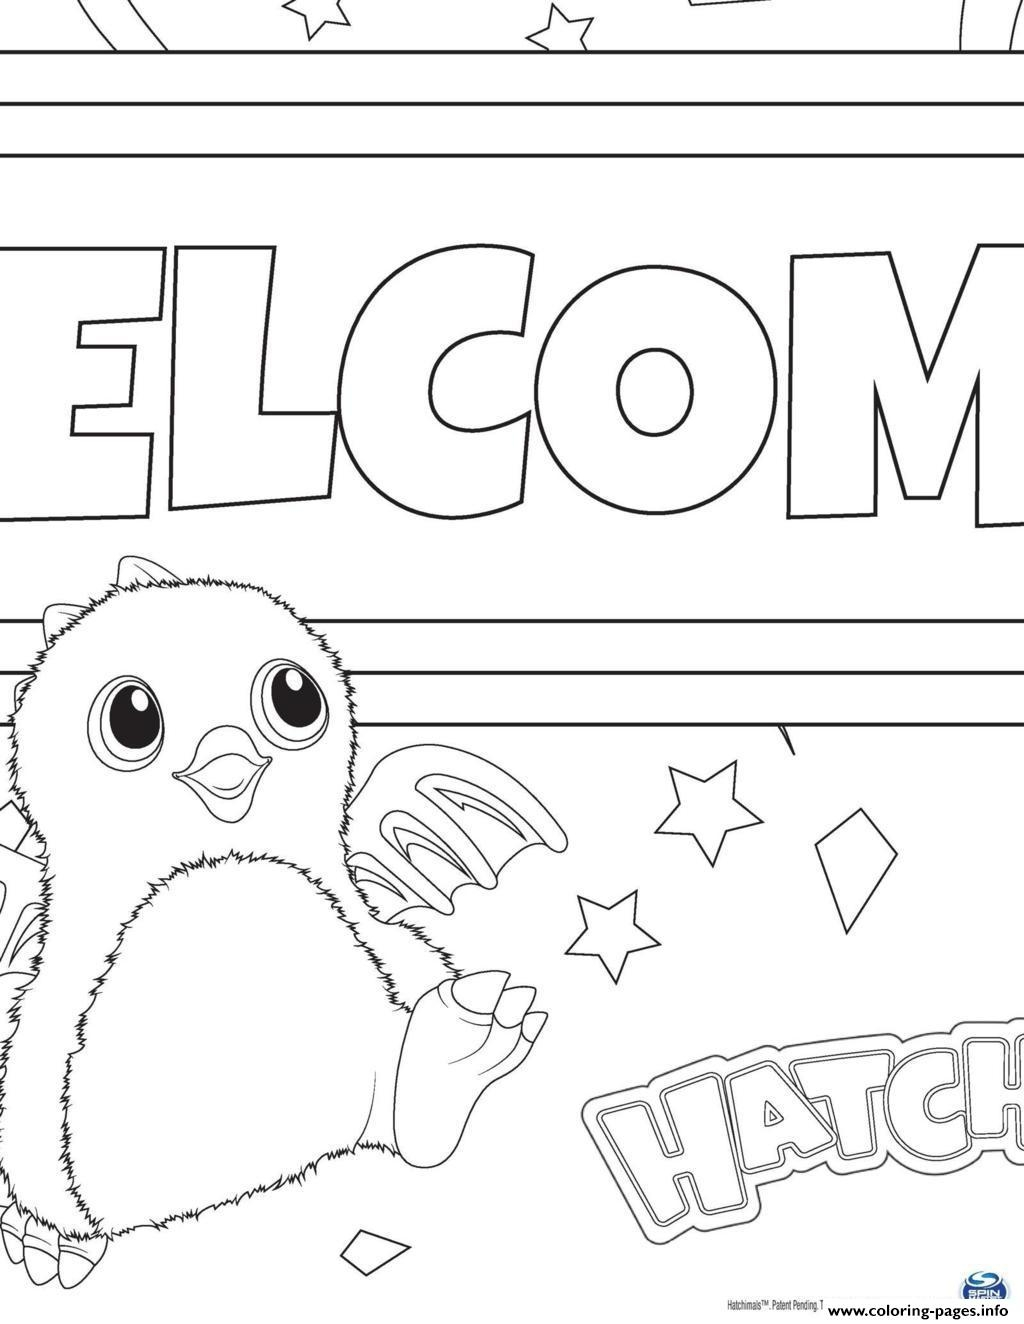 hatchimal coloring pages - hatchy hatchimals toy printable coloring pages book